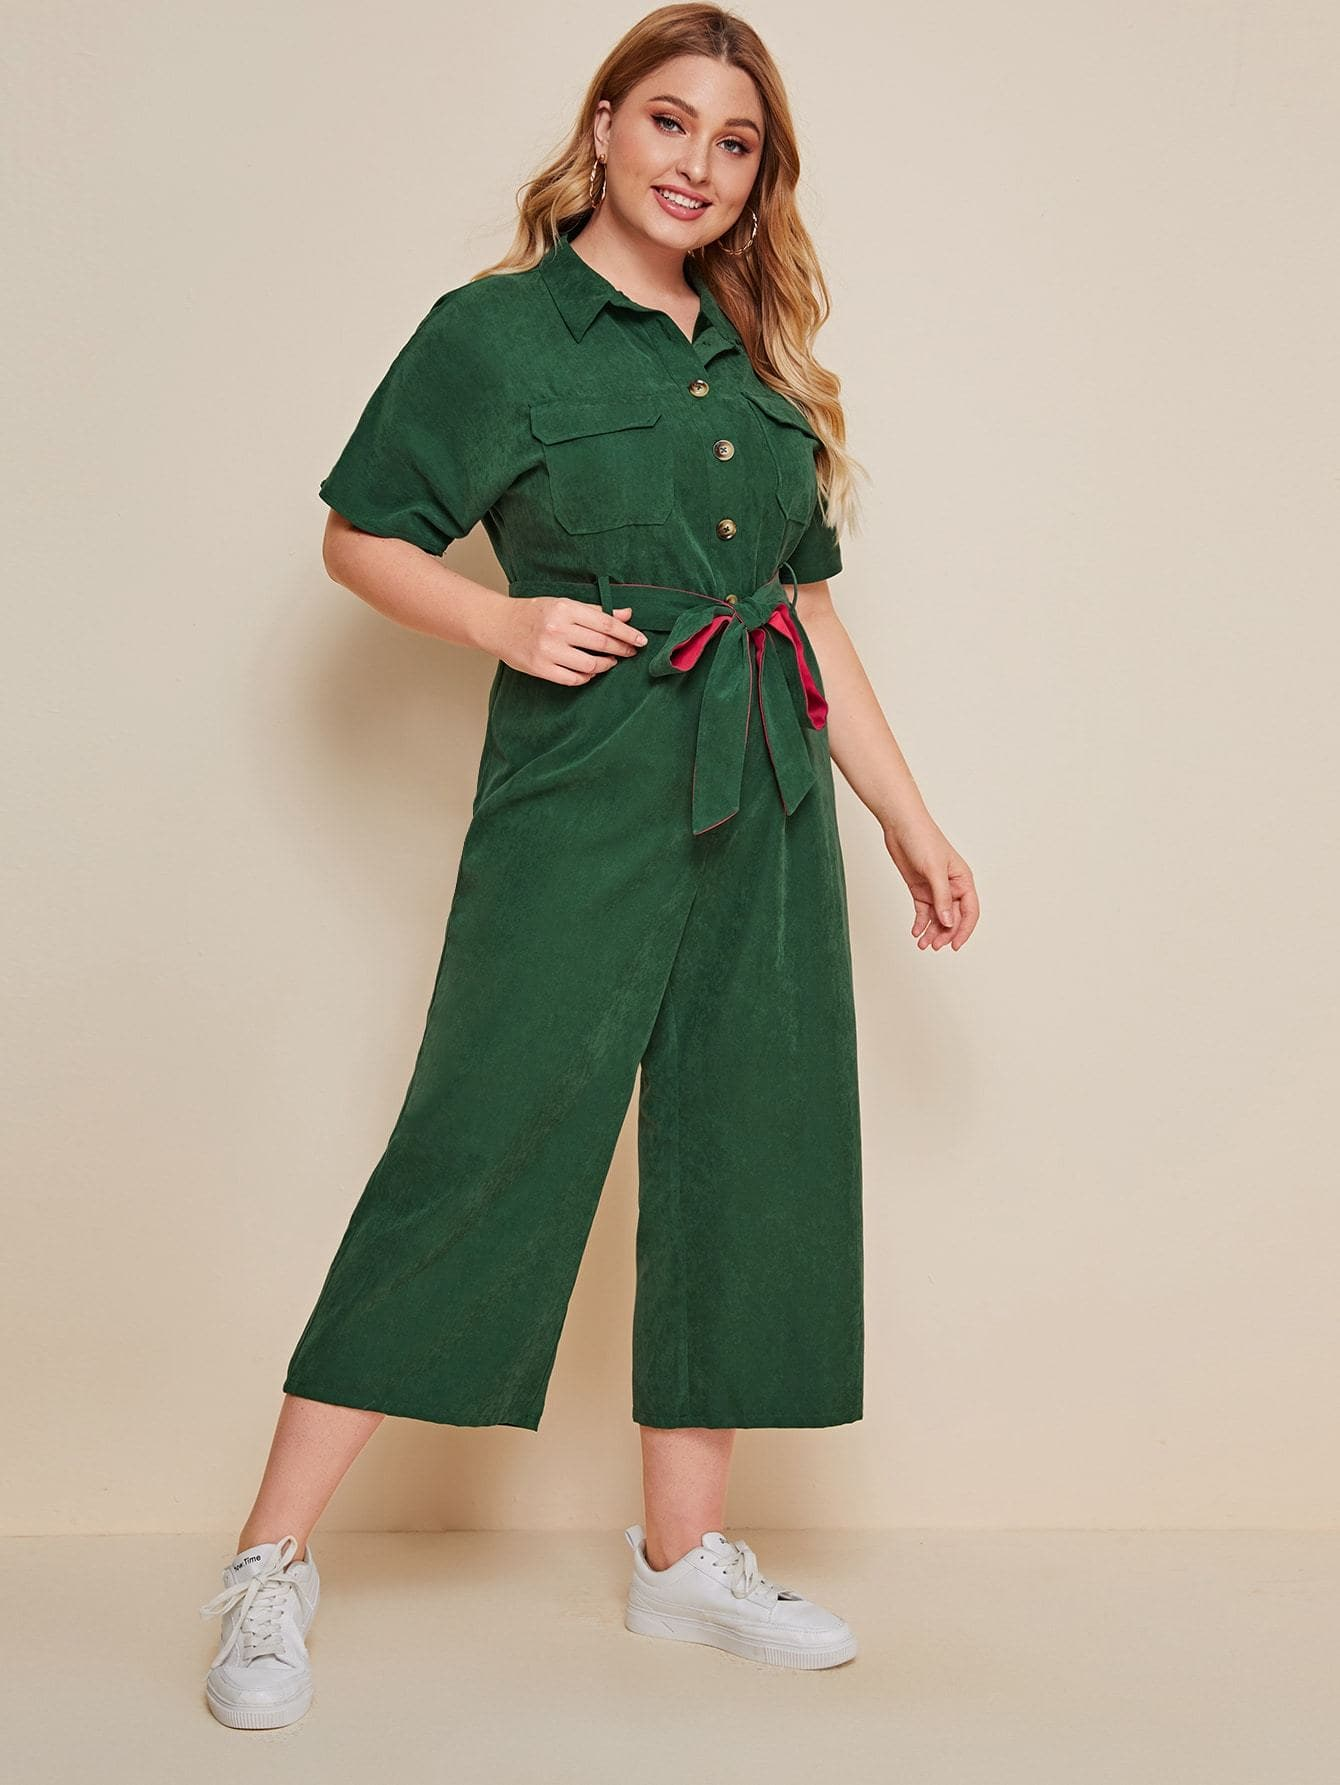 Plus Flap Pocket Belted Cropped Jumpsuit - FLJ CORPORATIONS